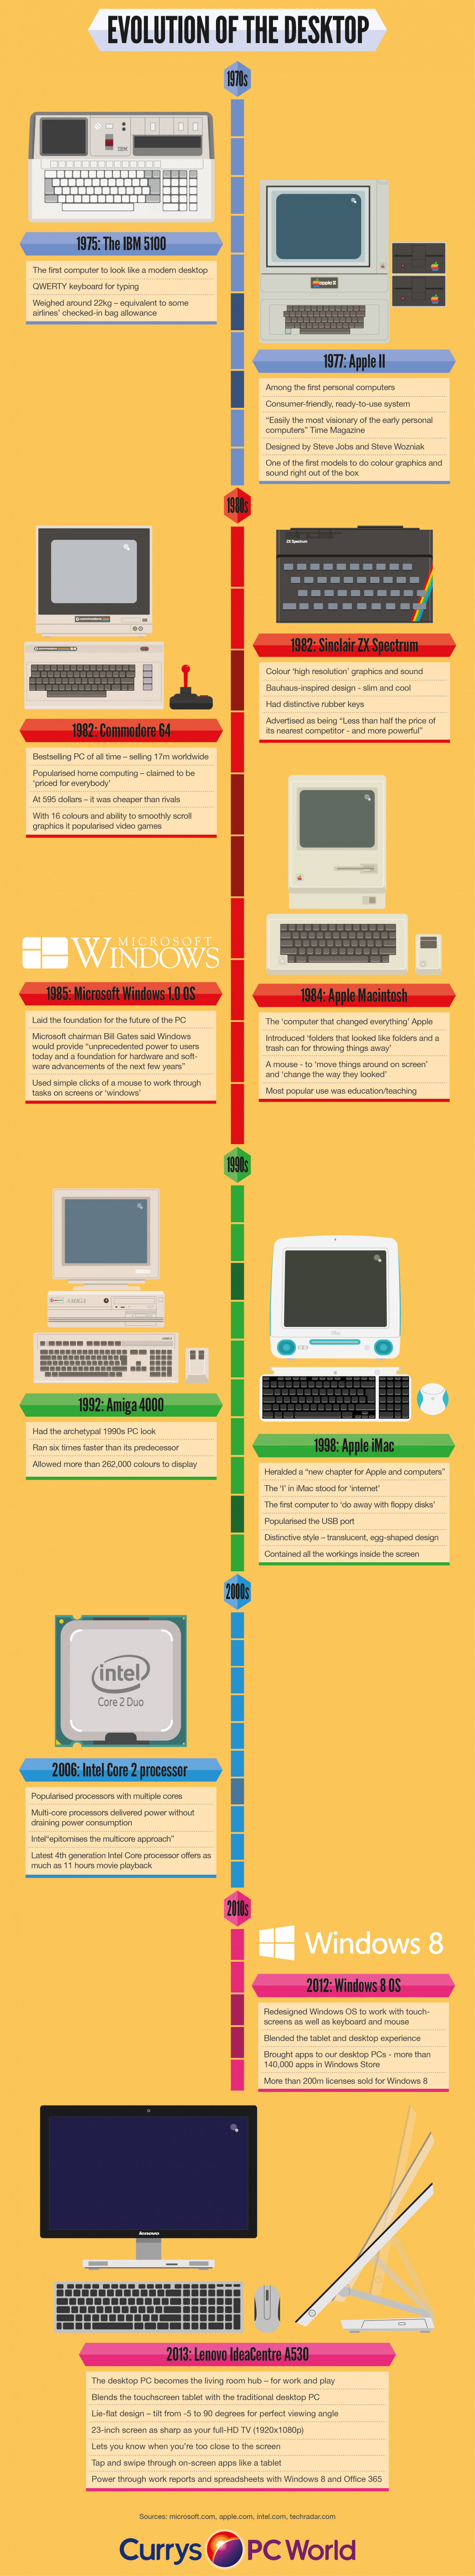 Evolution of the Desktop Infographic